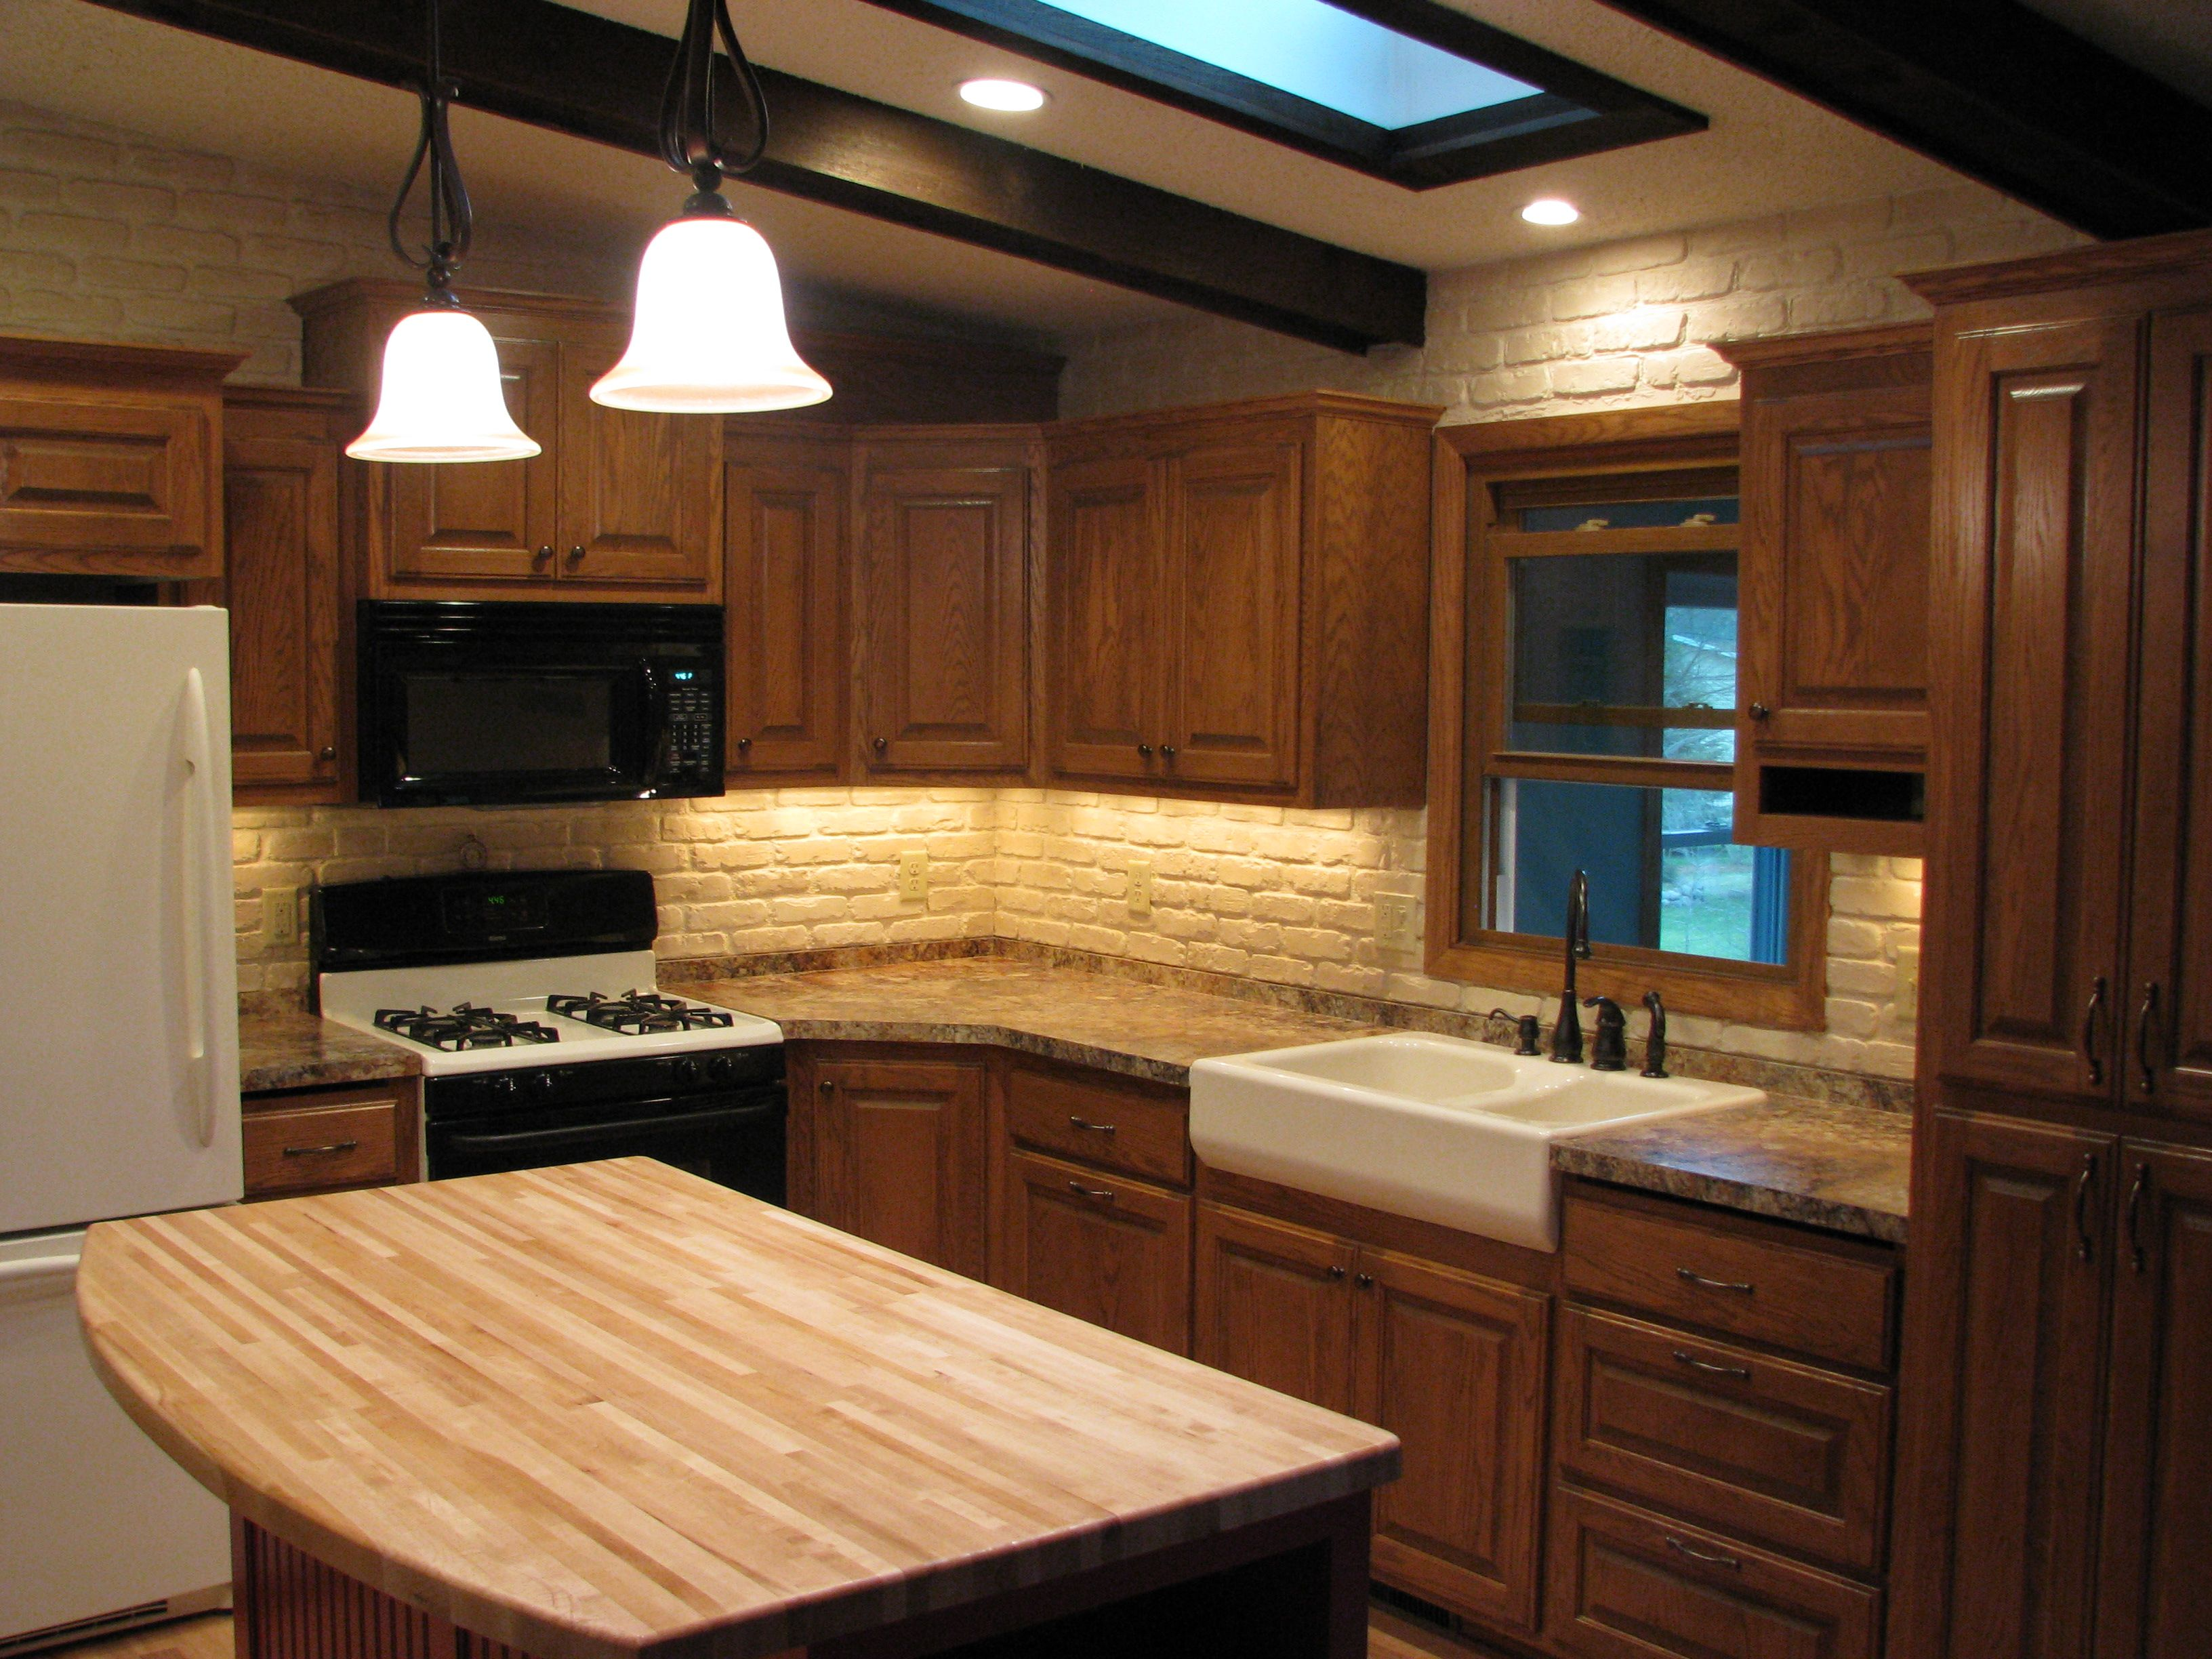 1970 S Split Level Kitchen Remodel Oak Cabinets Farm